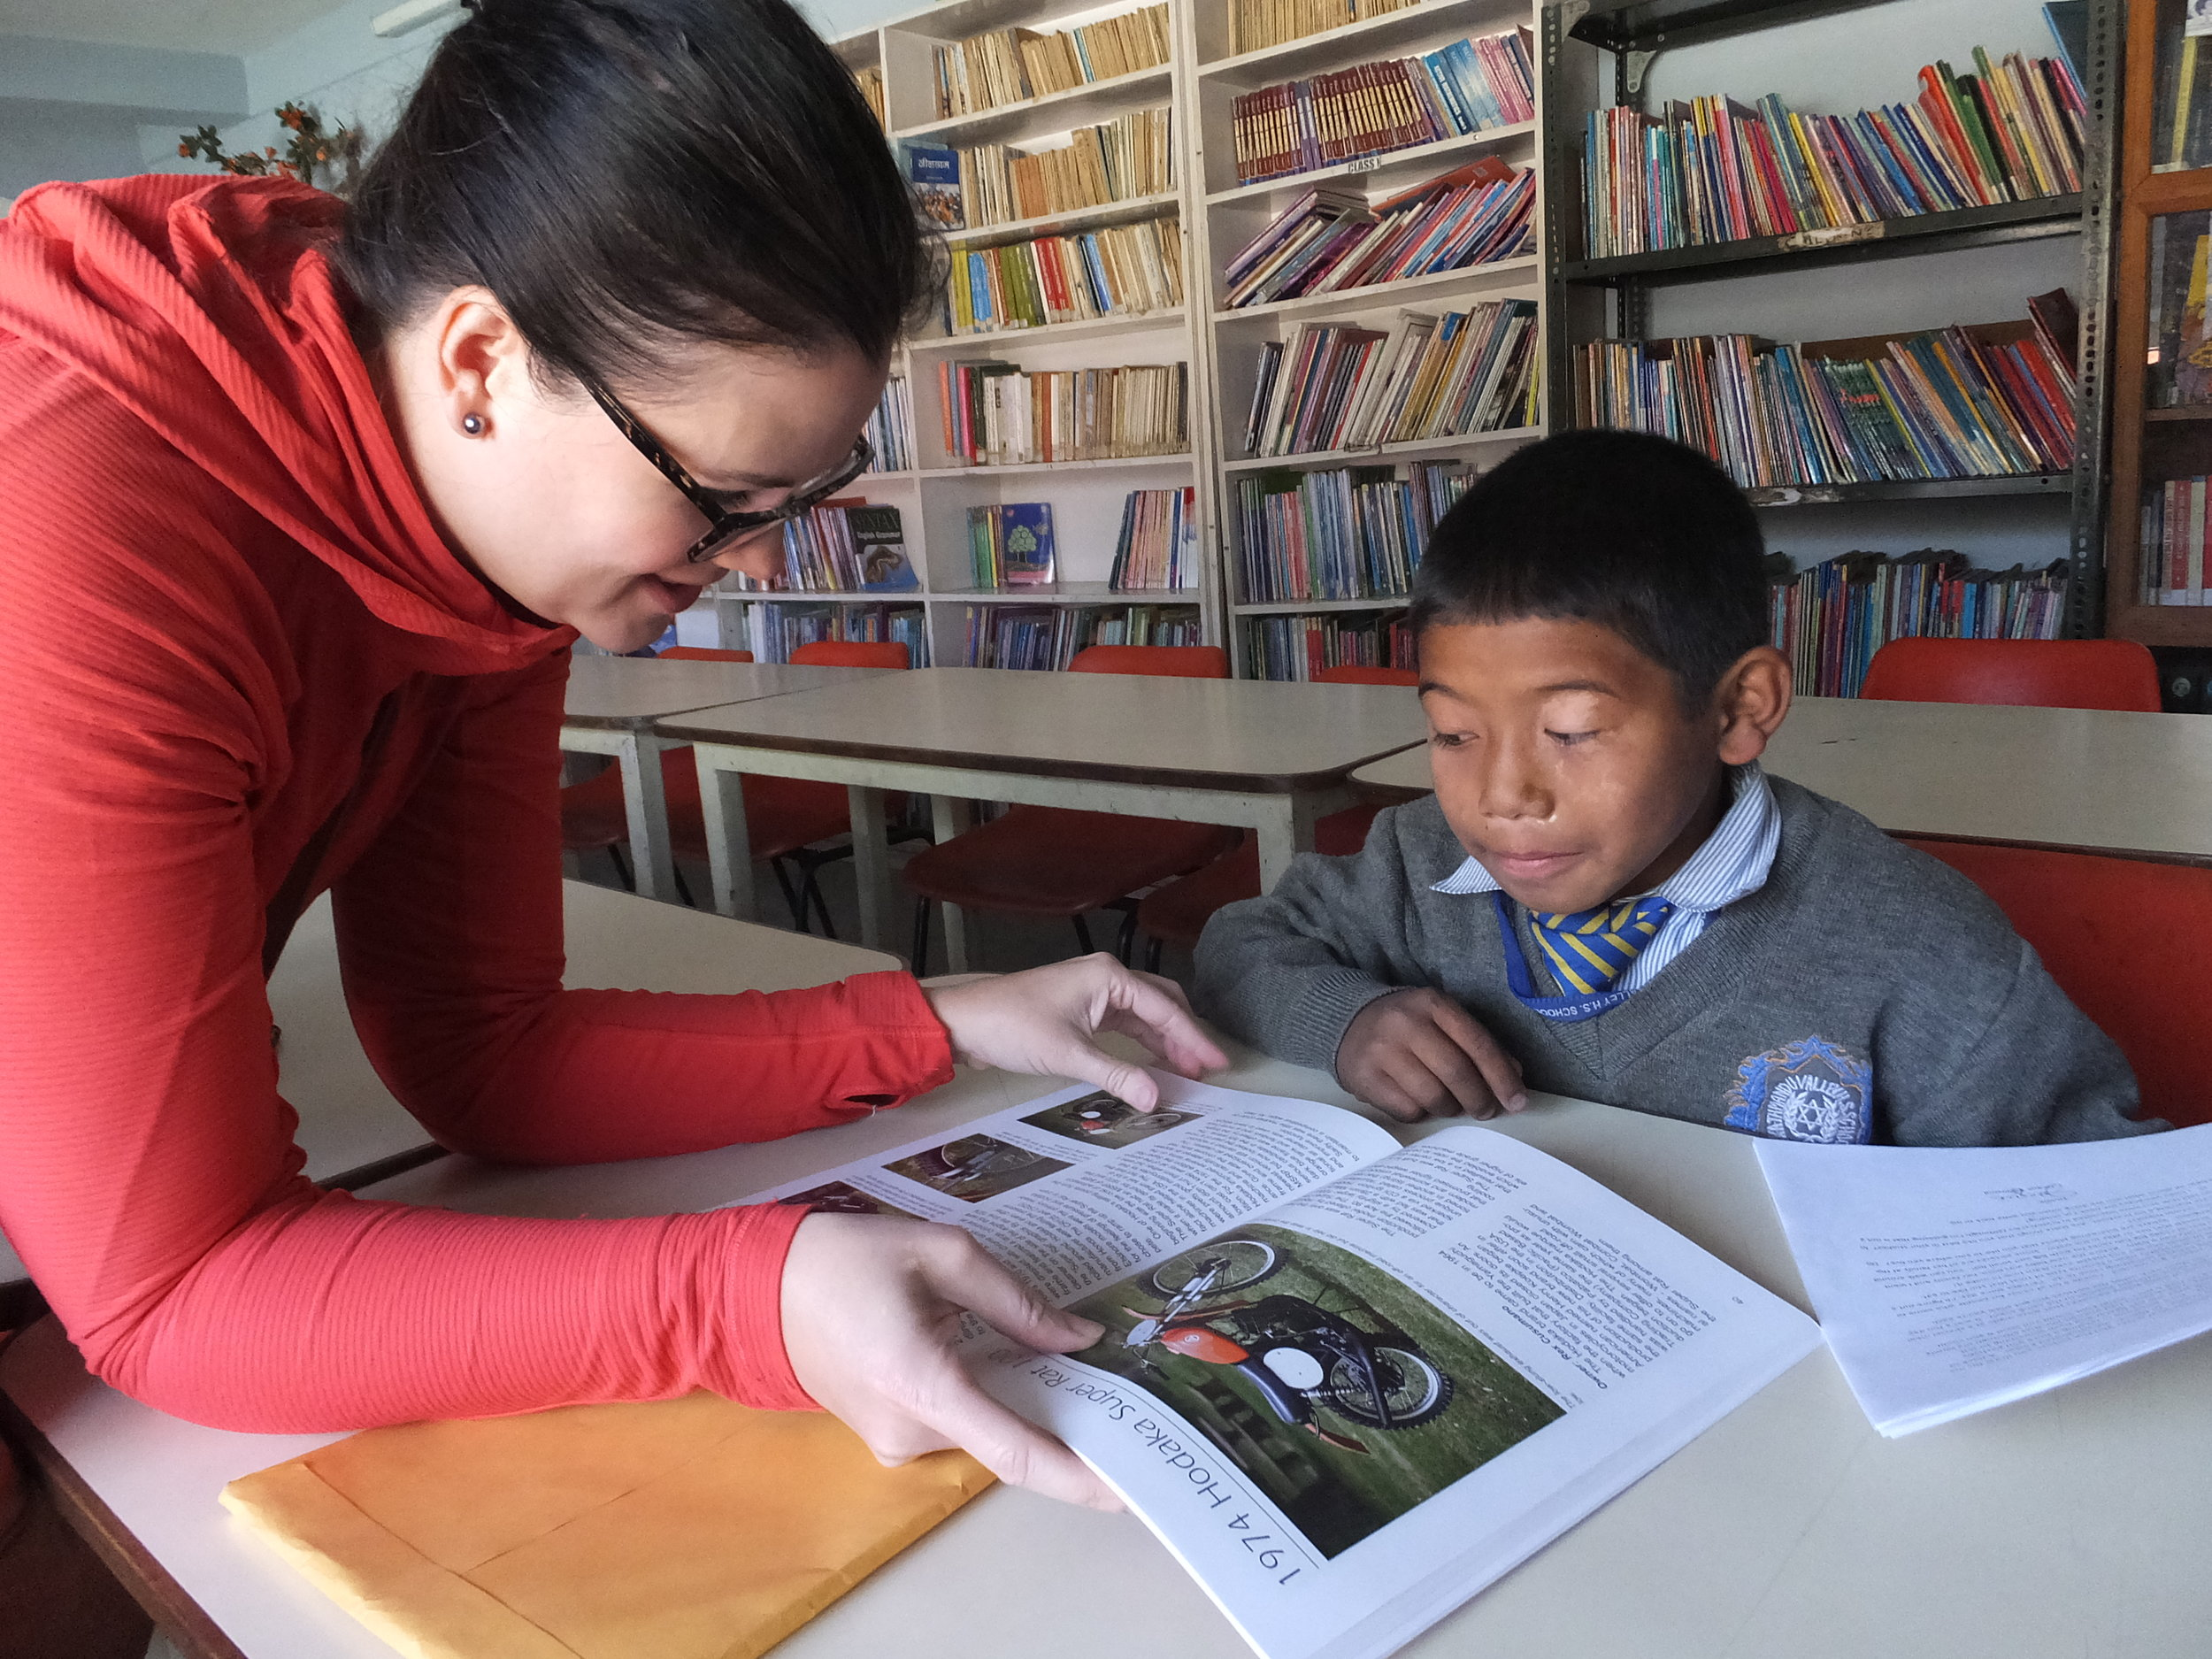 Alexis, Development Director, enjoys reading with one of the children.